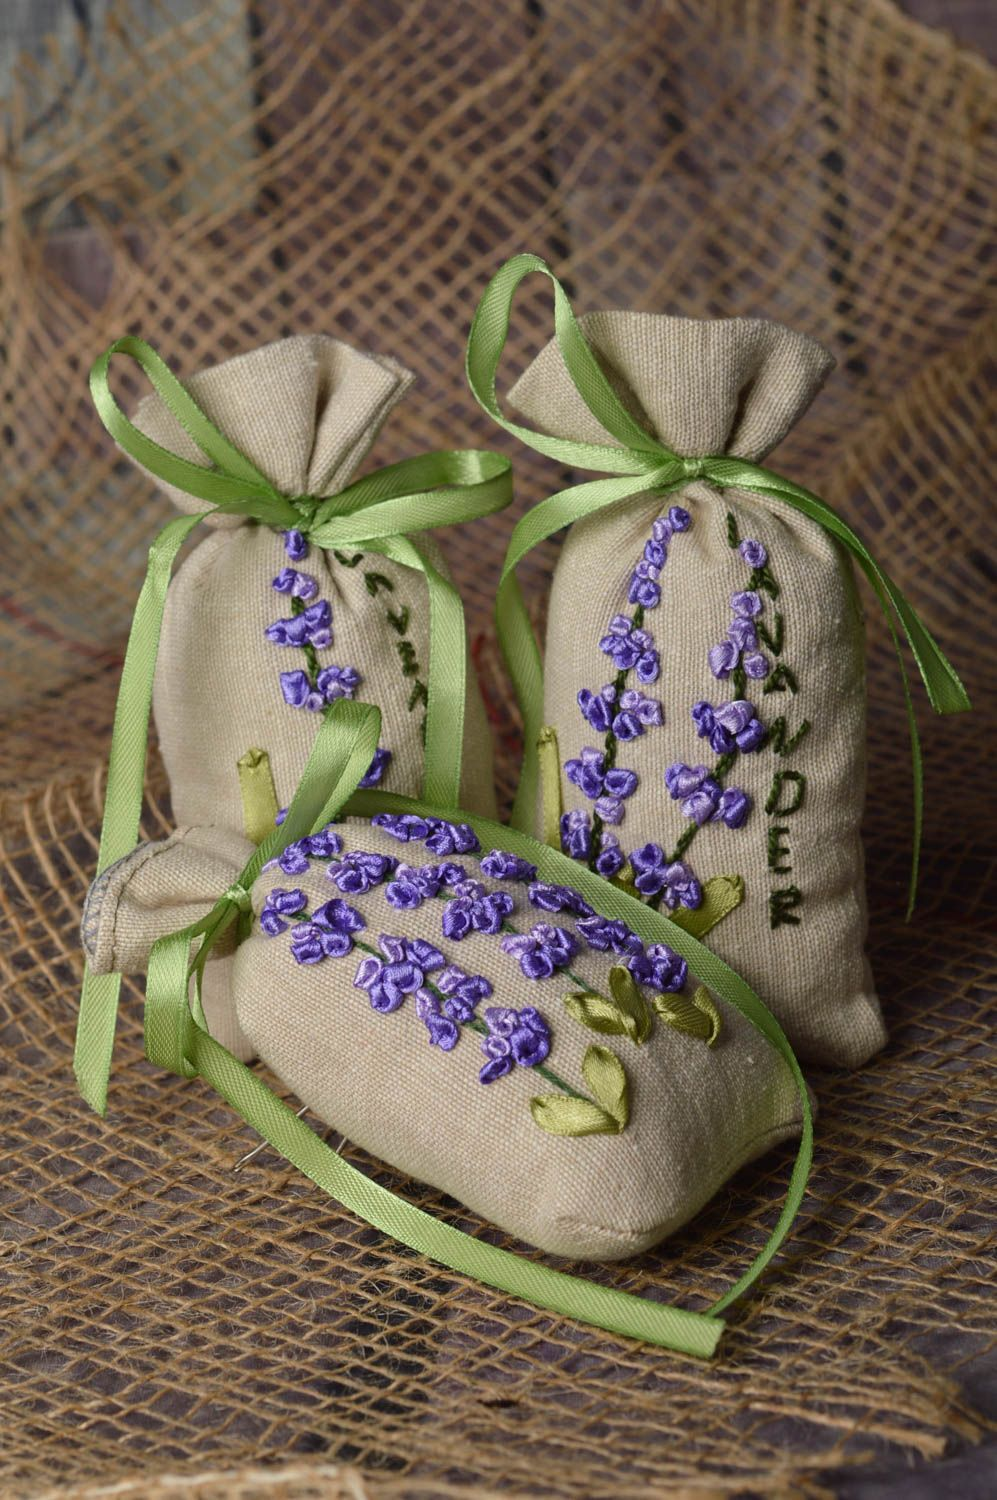 Handmade bags for aromatic sachets bags for gifts decorative use only photo 1